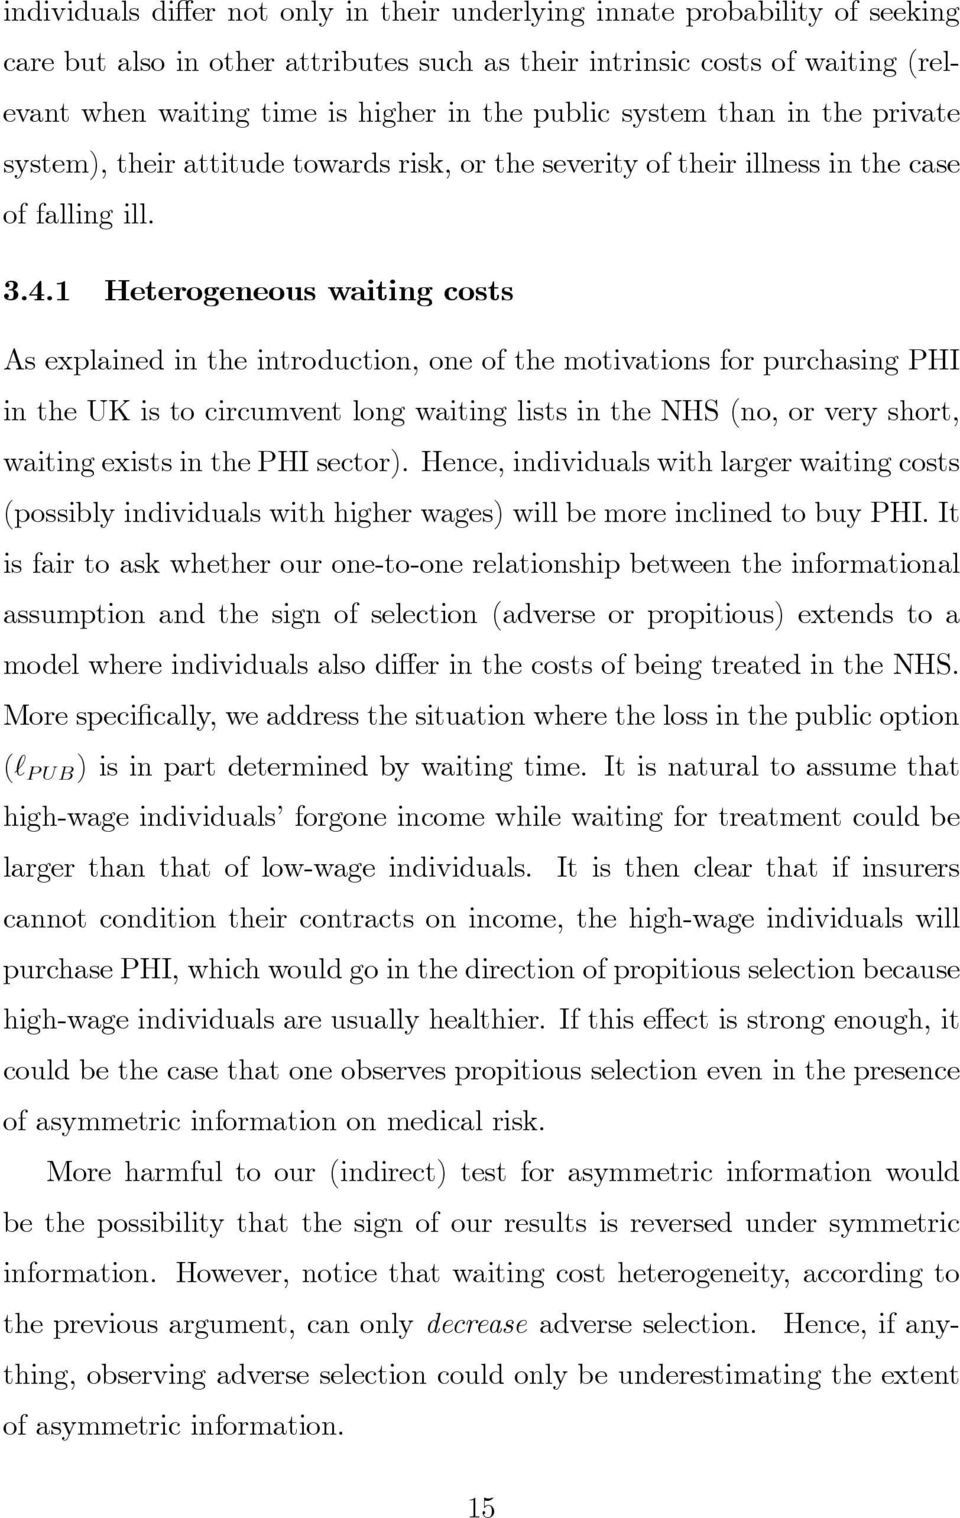 1 Heterogeneous waiting costs As explained in the introduction, one of the motivations for purchasing PHI in the UK is to circumvent long waiting lists in the NHS (no, or very short, waiting exists